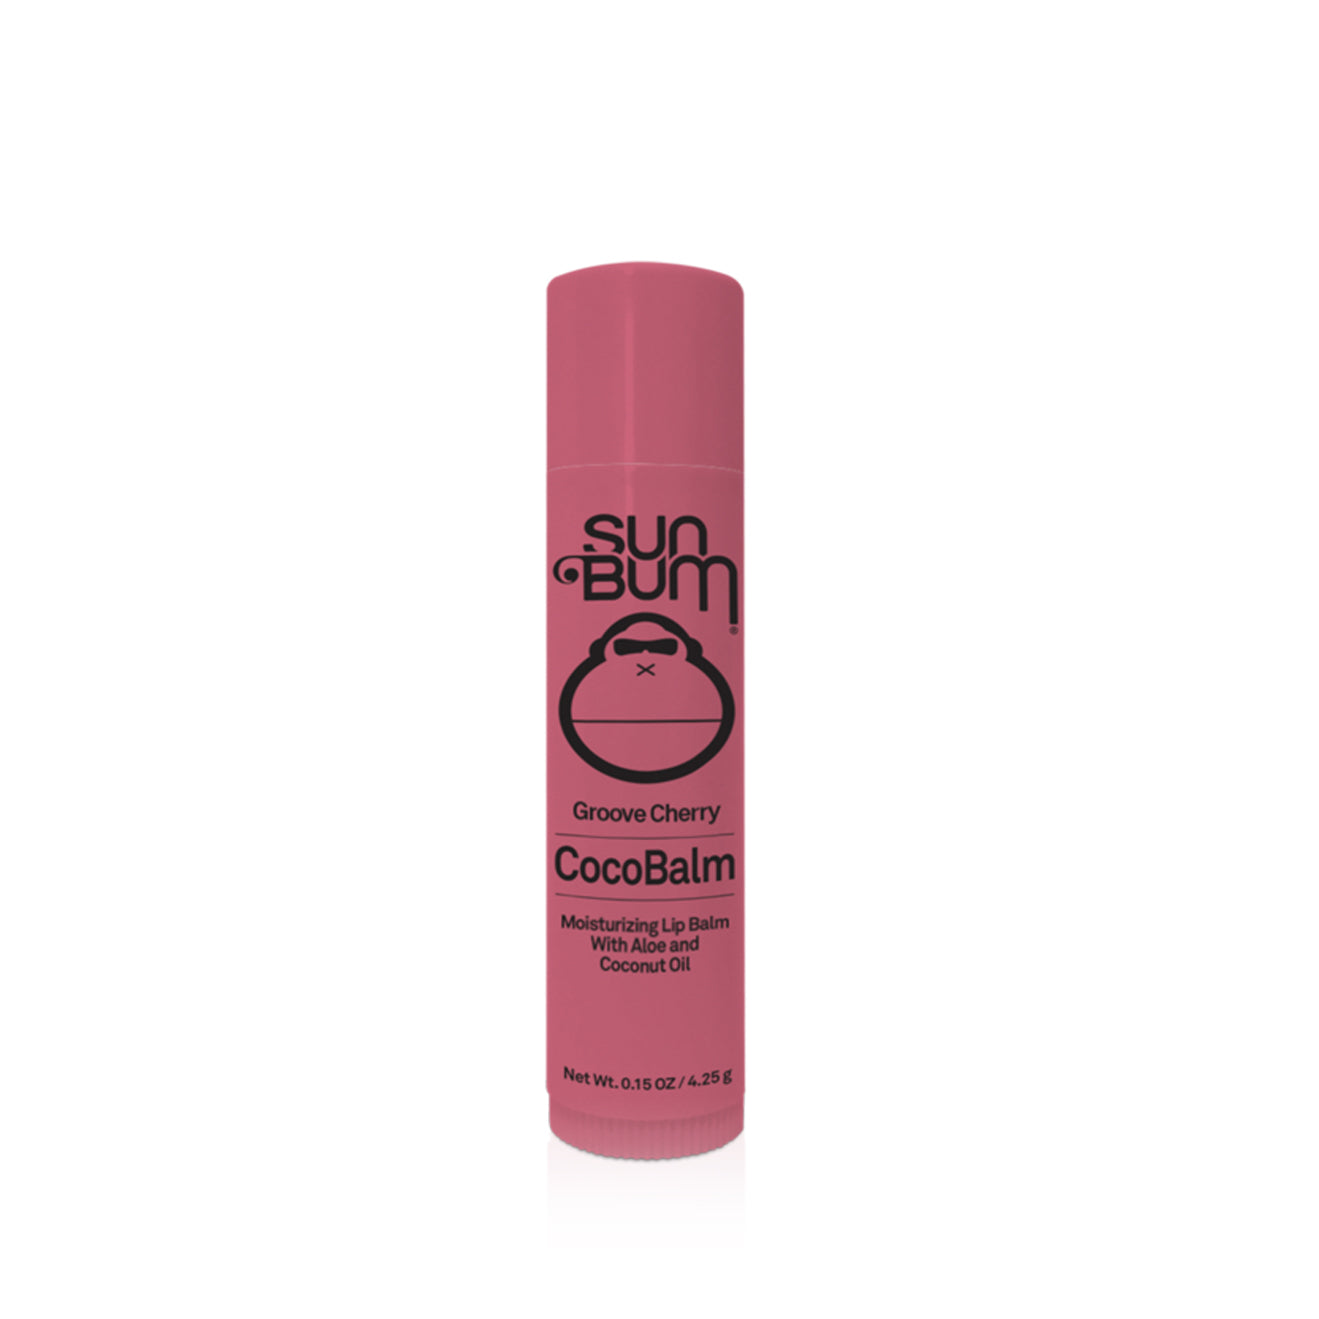 Sun Bum CocoBalm Groove Berry 4.25g